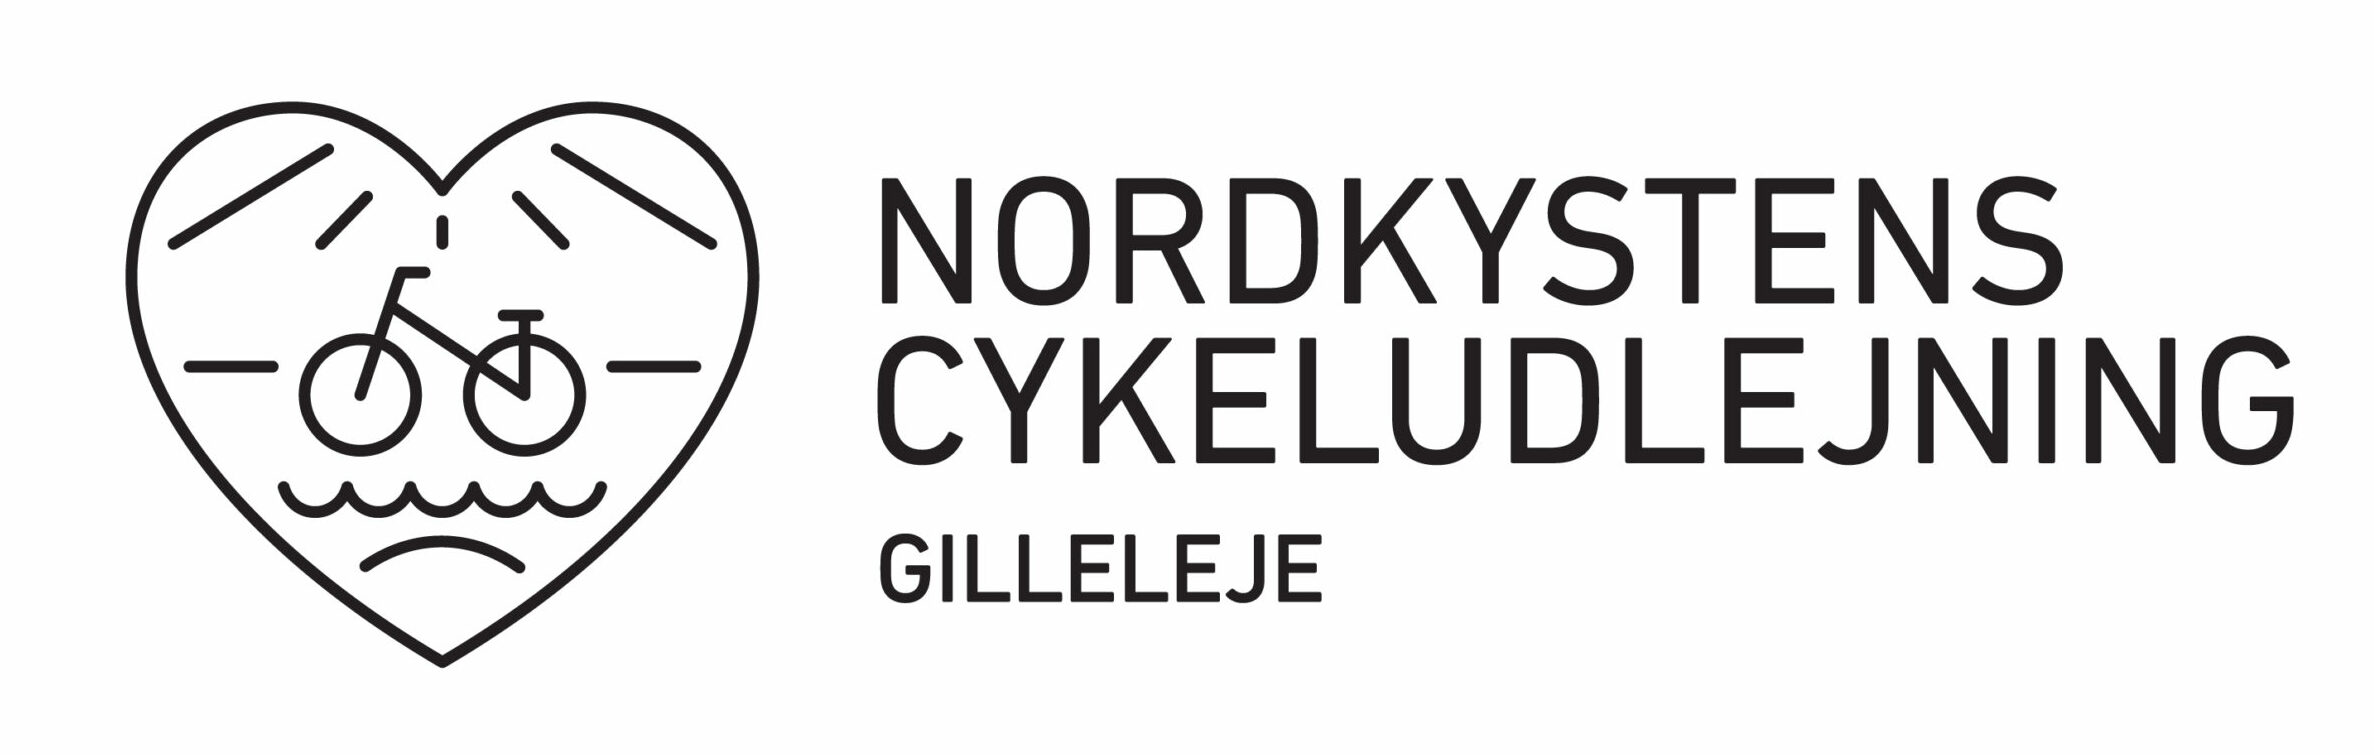 Nordkystens cykeludlejning